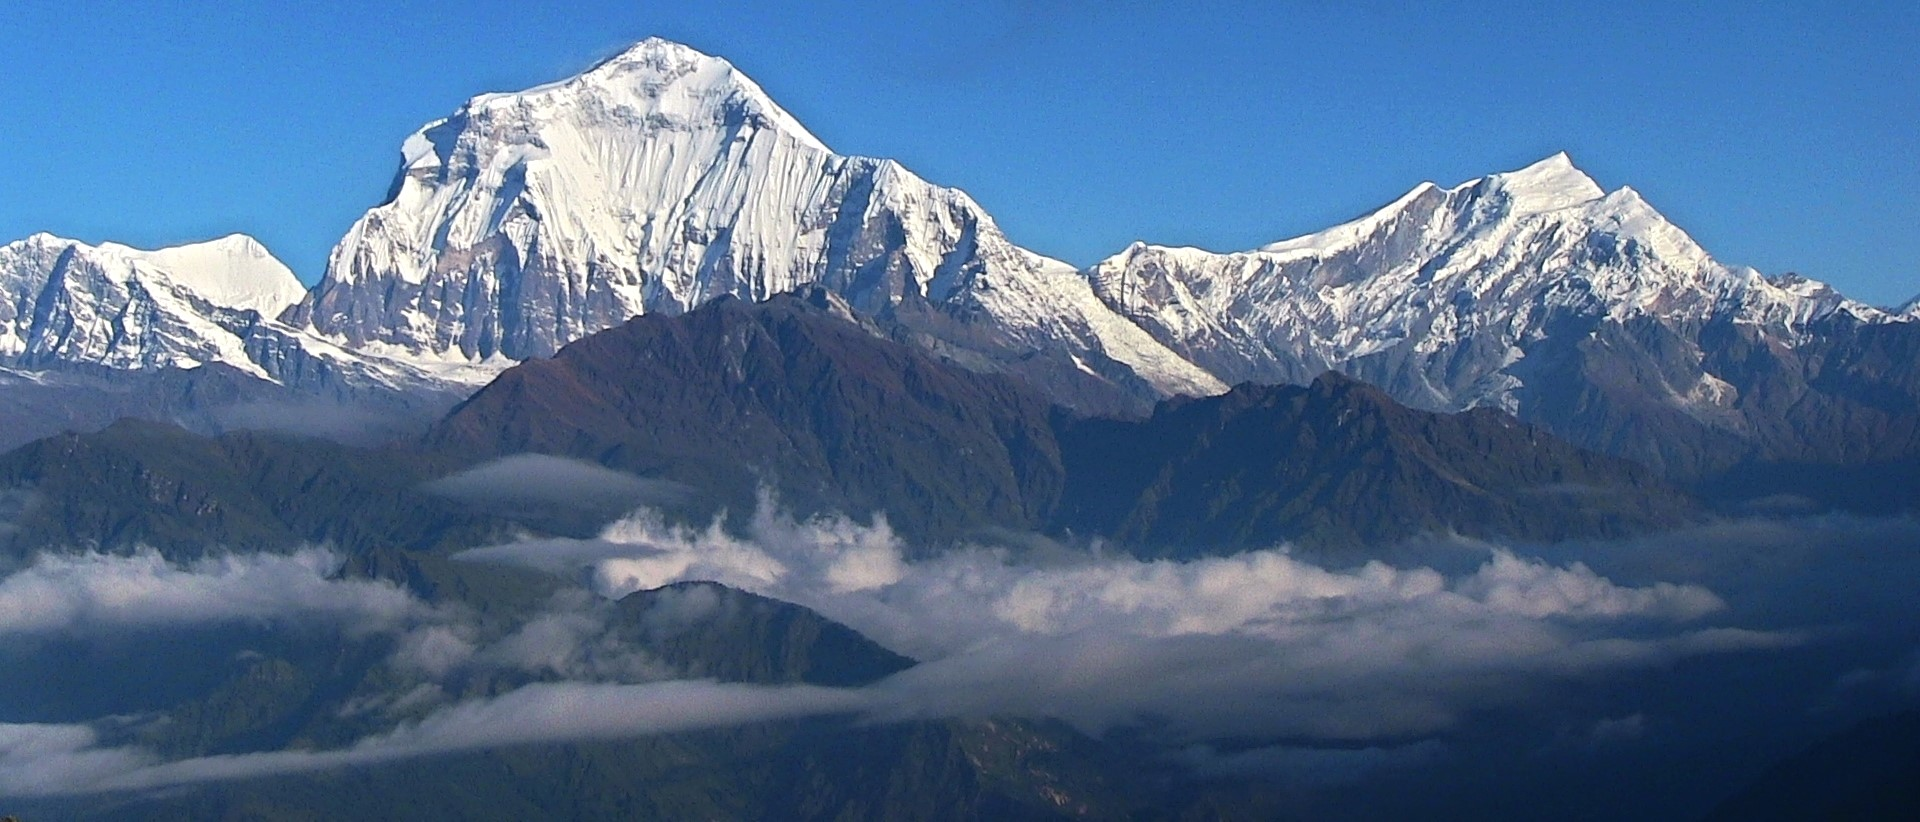 Nepal's mountains BIOFIN